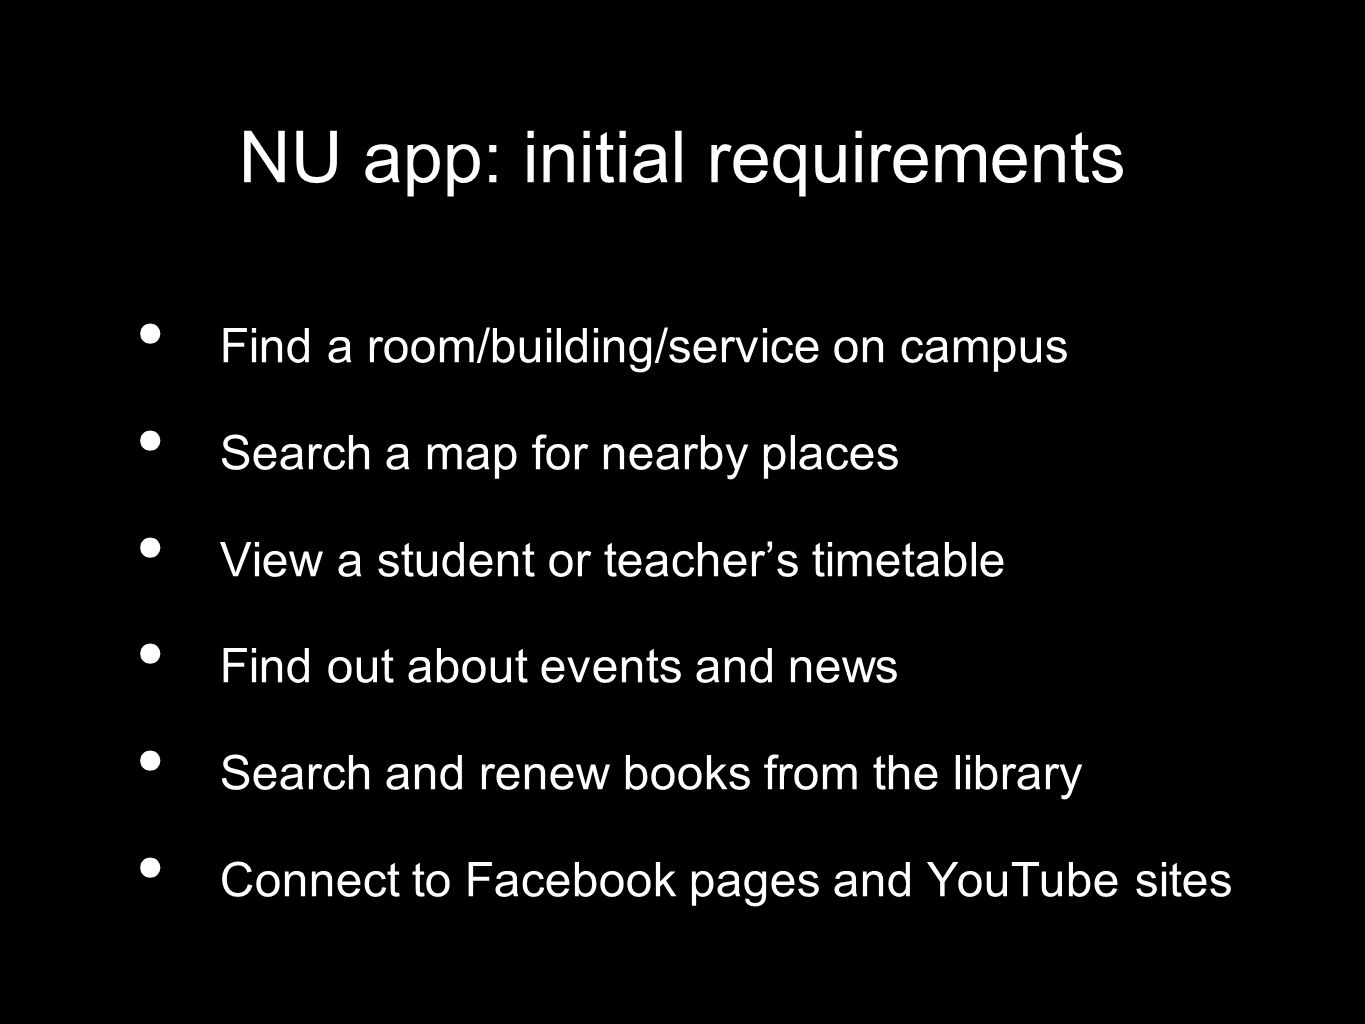 NU app: initial requirements Find a room/building/service on campus Search a map for nearby places View a student or teachers timetable Find out about events and news Search and renew books from the library Connect to Facebook pages and YouTube sites